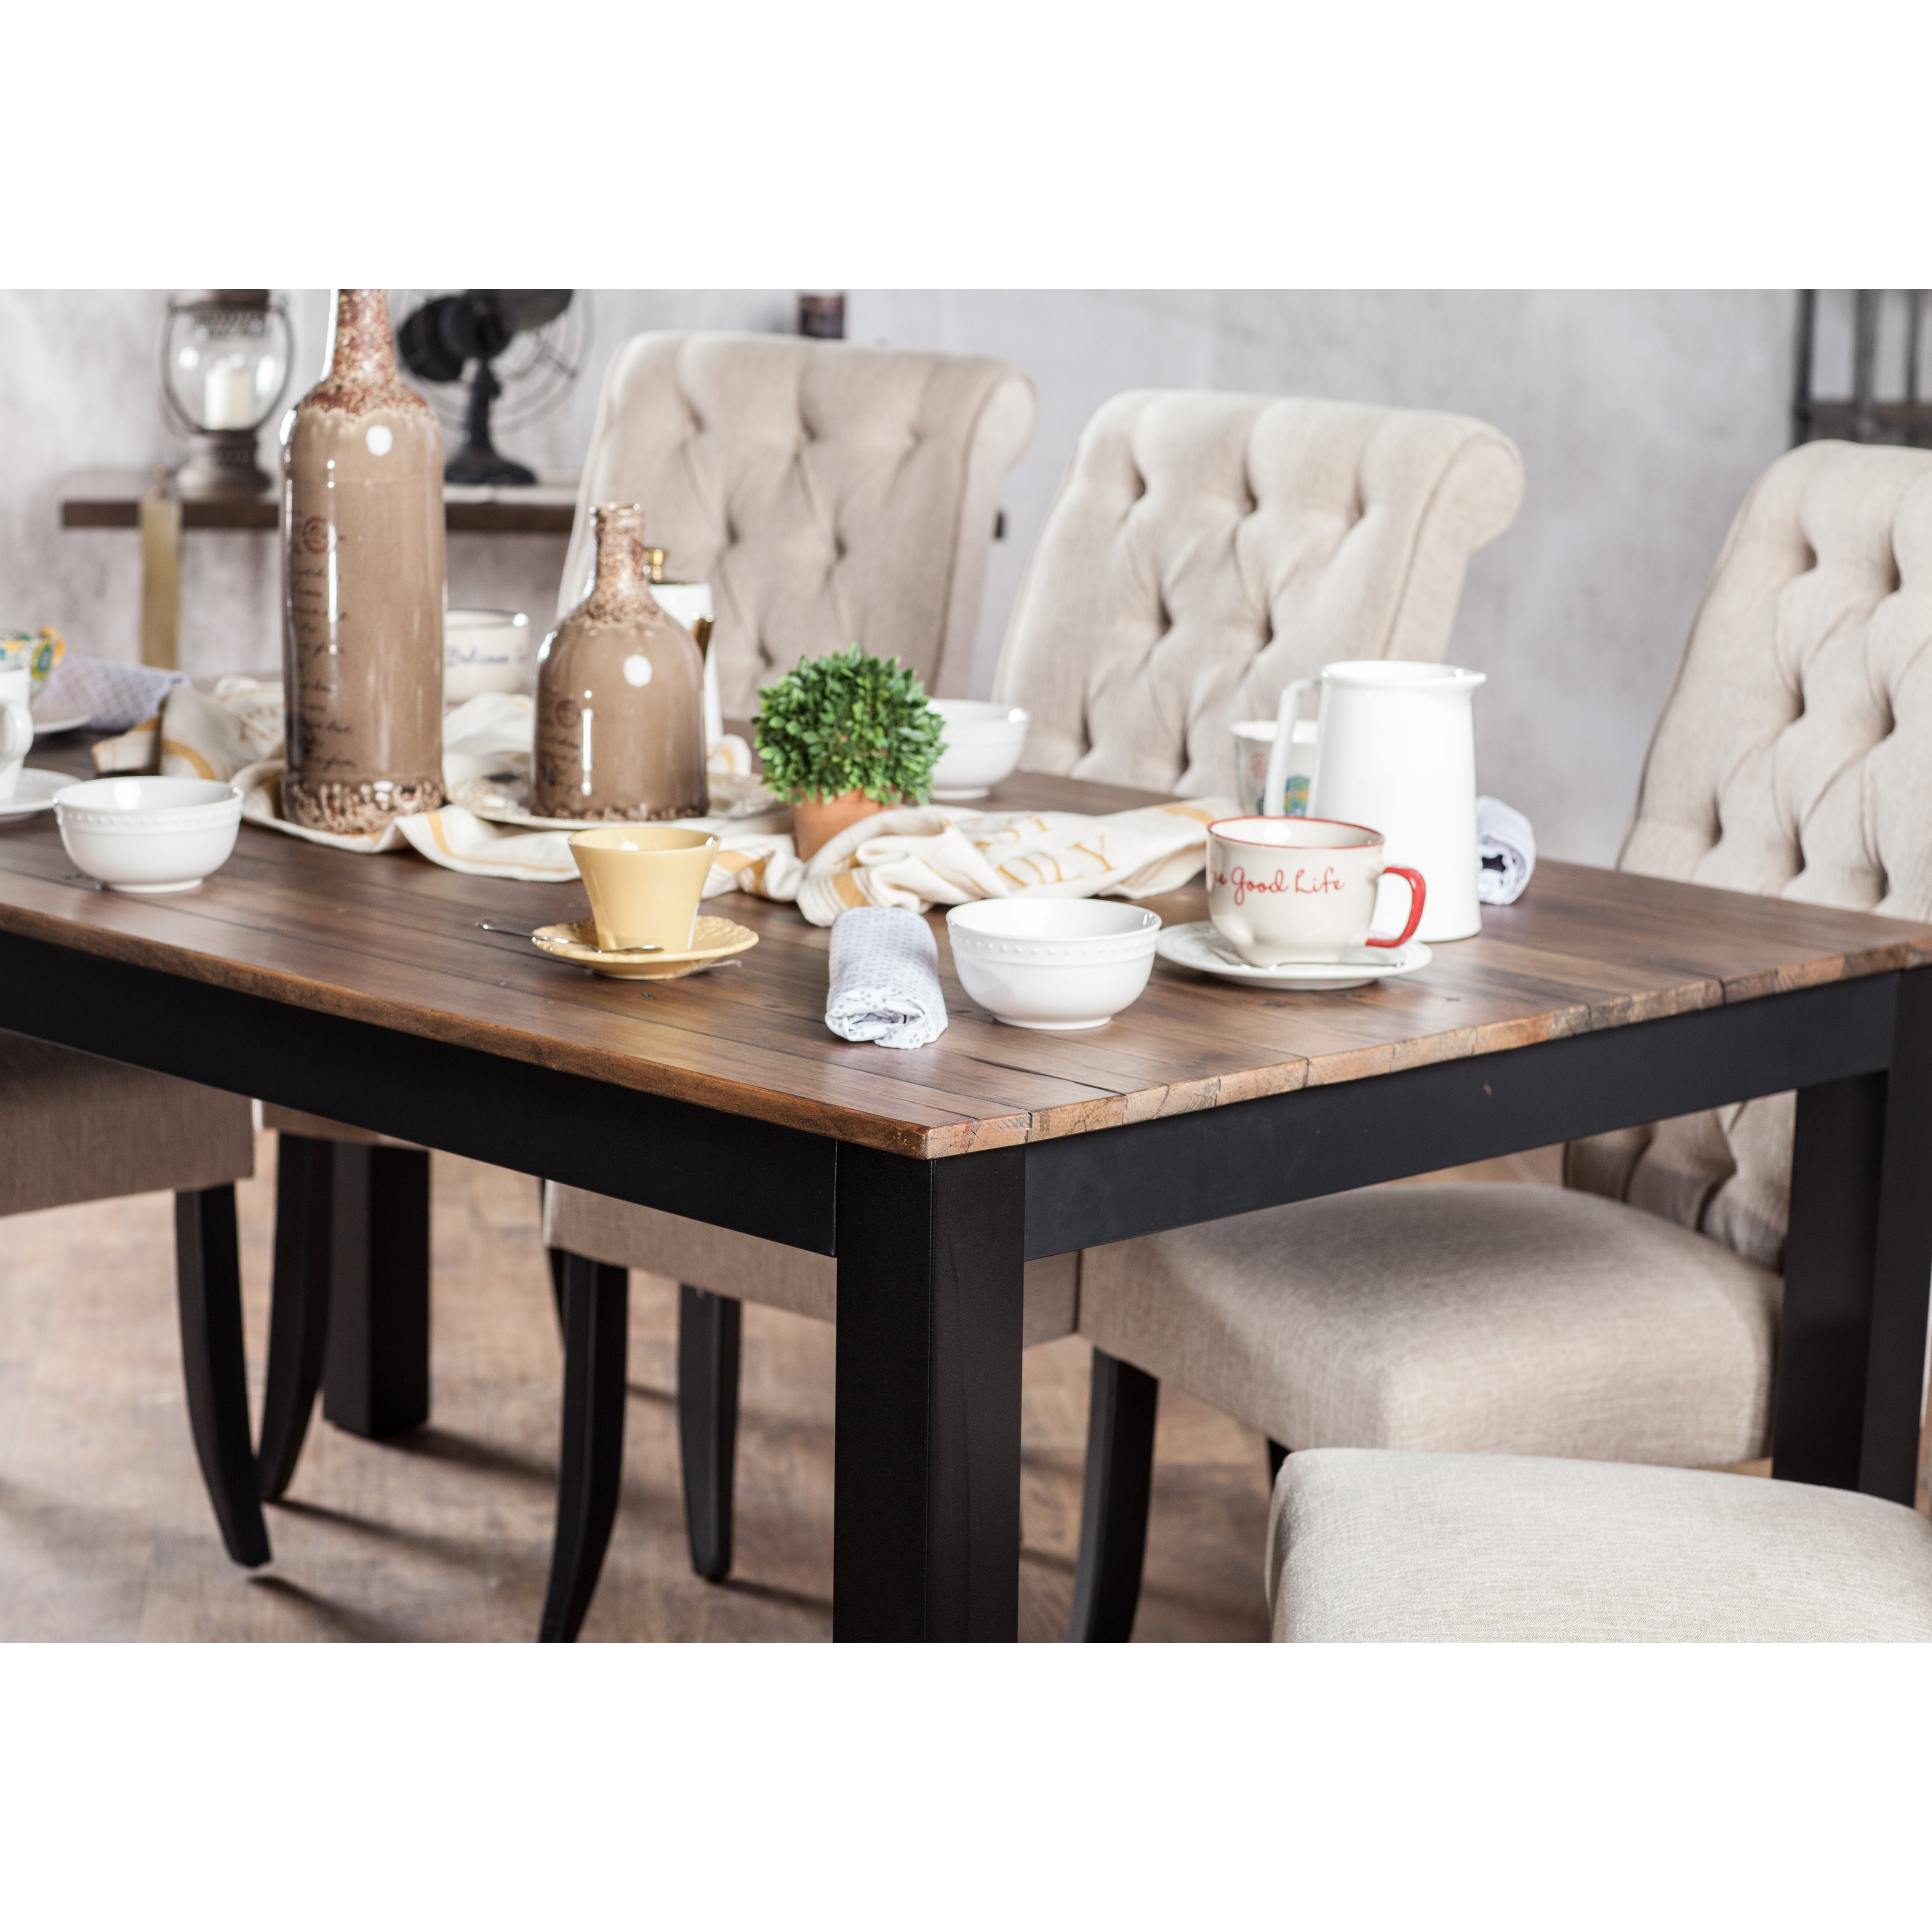 Farmhouse Dining Table: Laurel Foundry Modern Farmhouse Artemps Dining Table